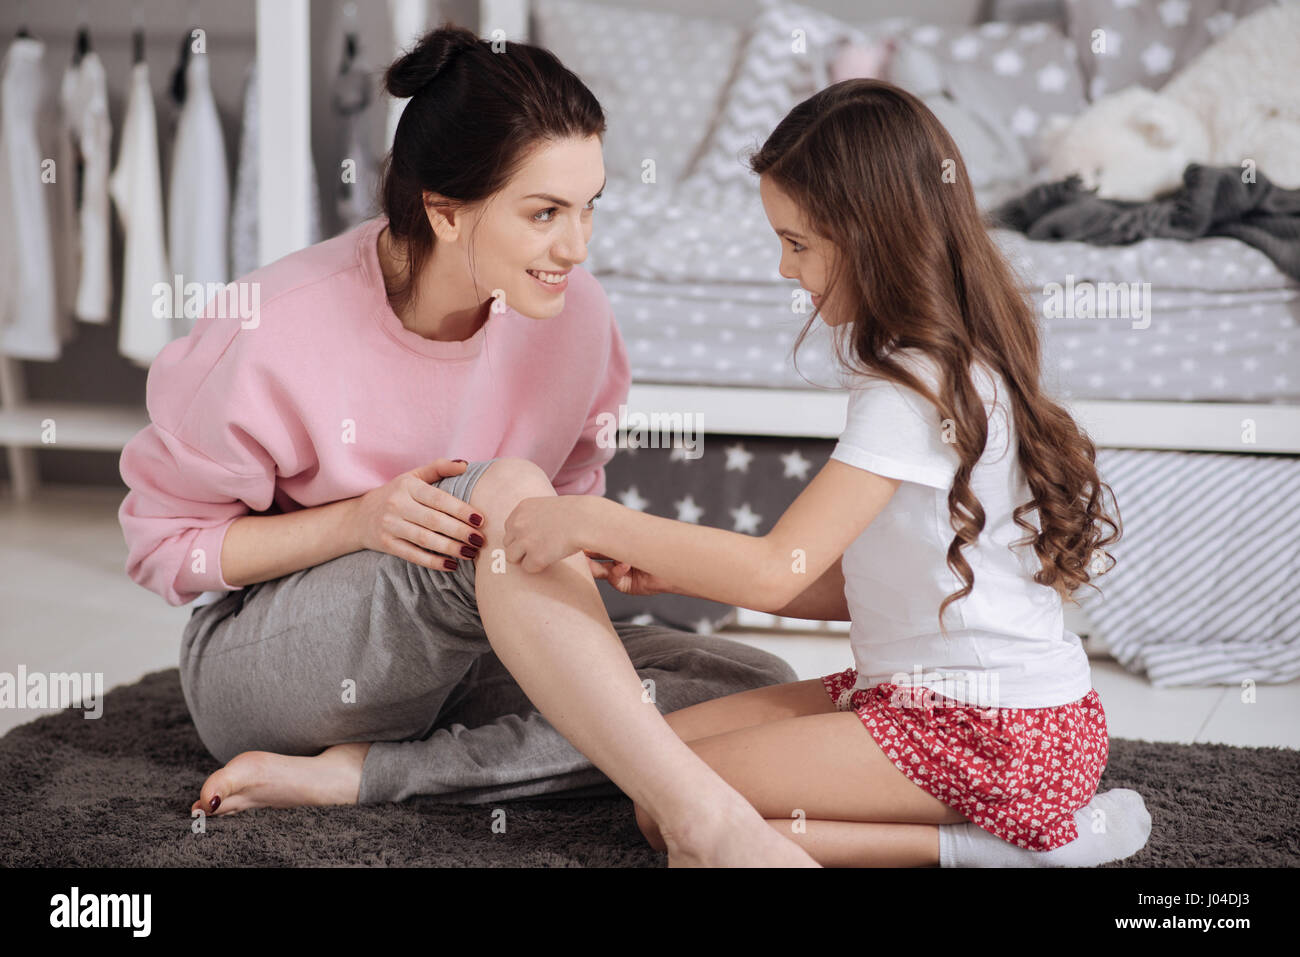 Priceless moments of motherhood. Cute skilled caring kid sitting in the night nursery and taking care of her mother - Stock Image